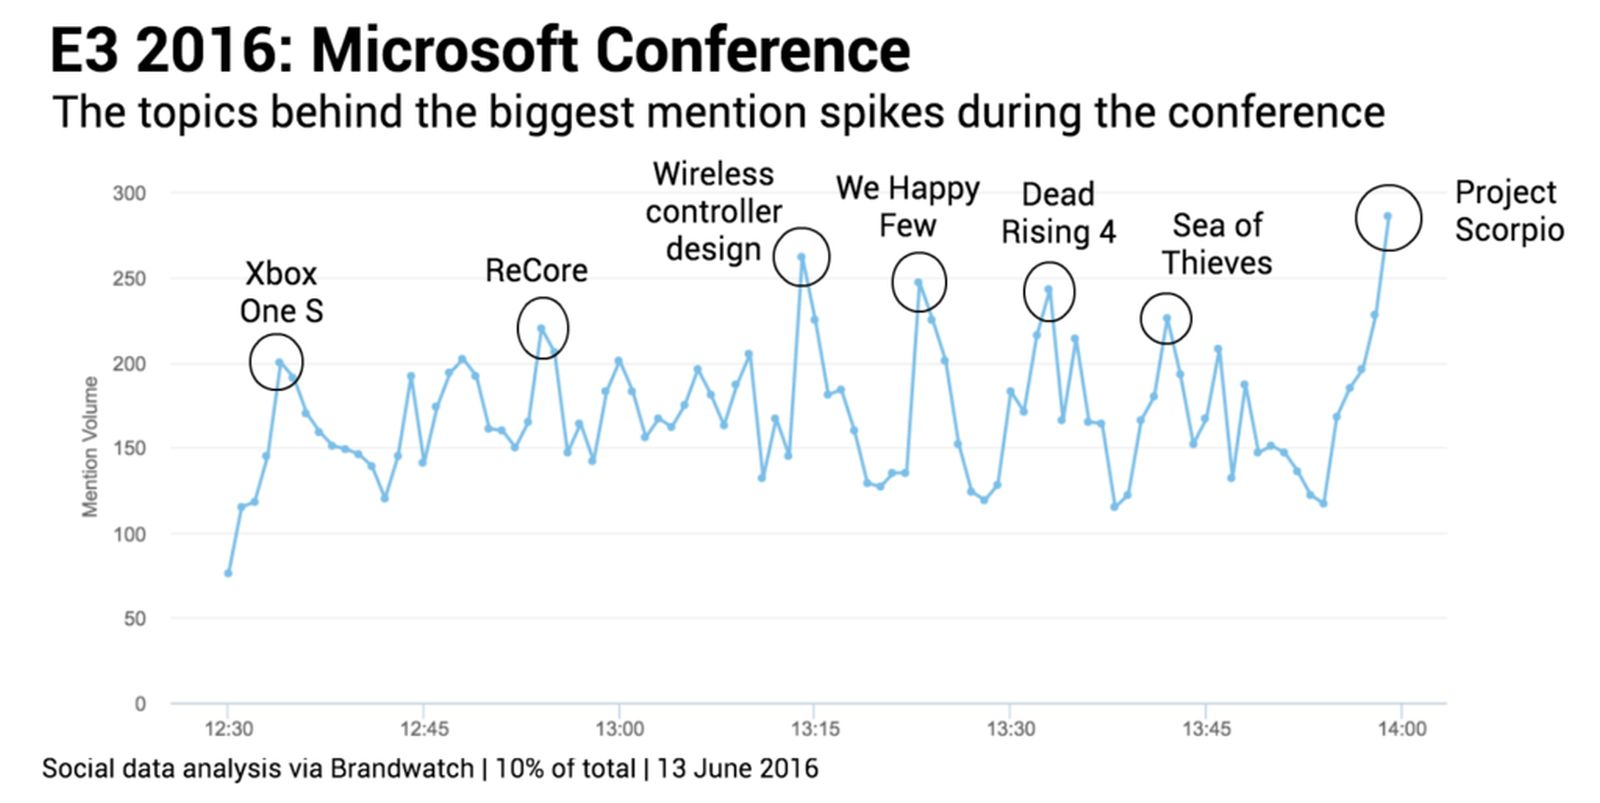 e3 2016 Most-mentioned-moments-Microsoft brandwatch